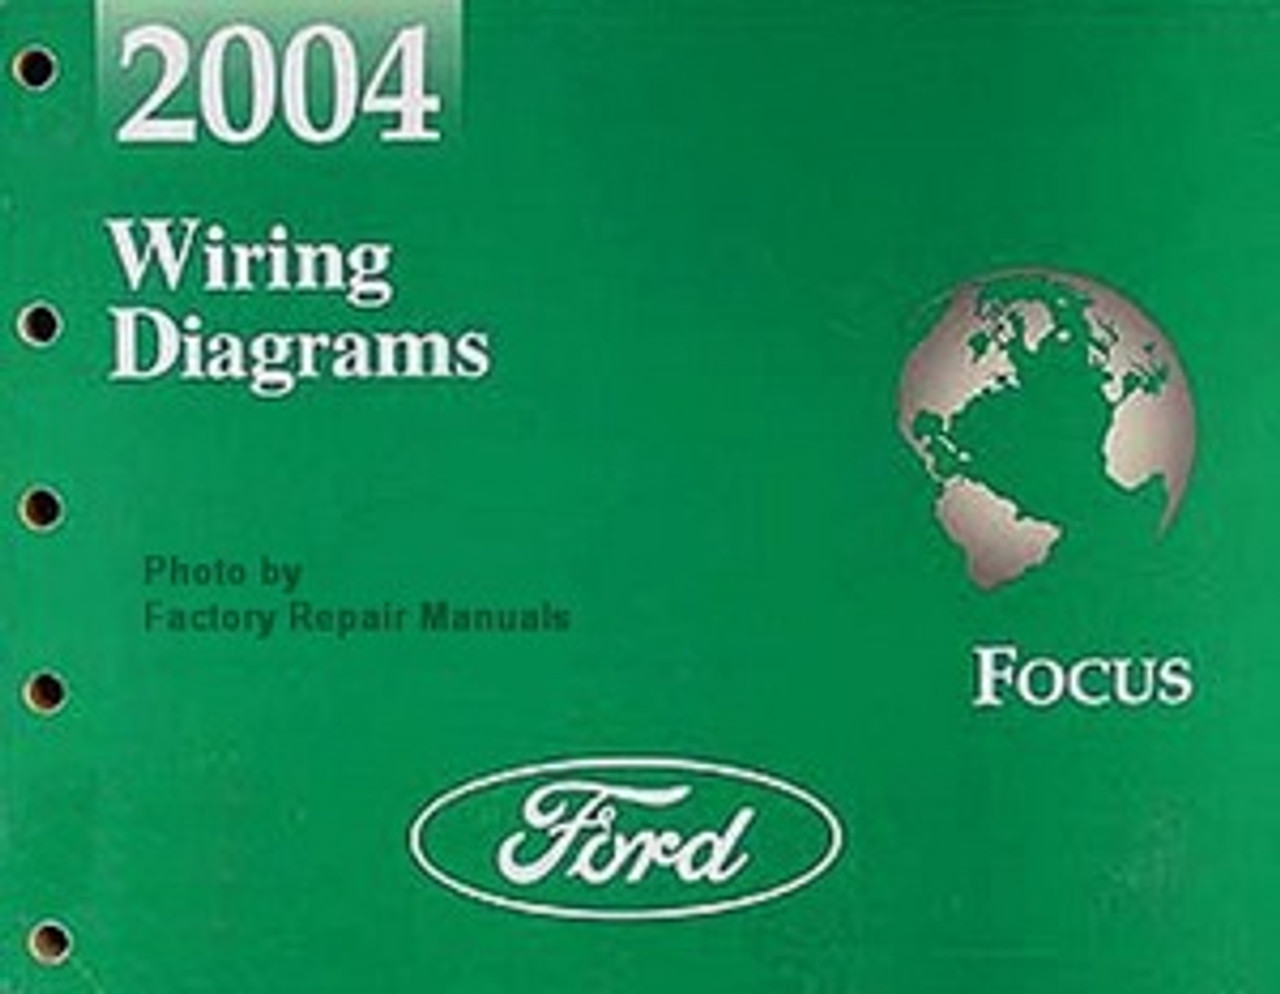 2004 Ford Focus Electrical Wiring Diagrams Original